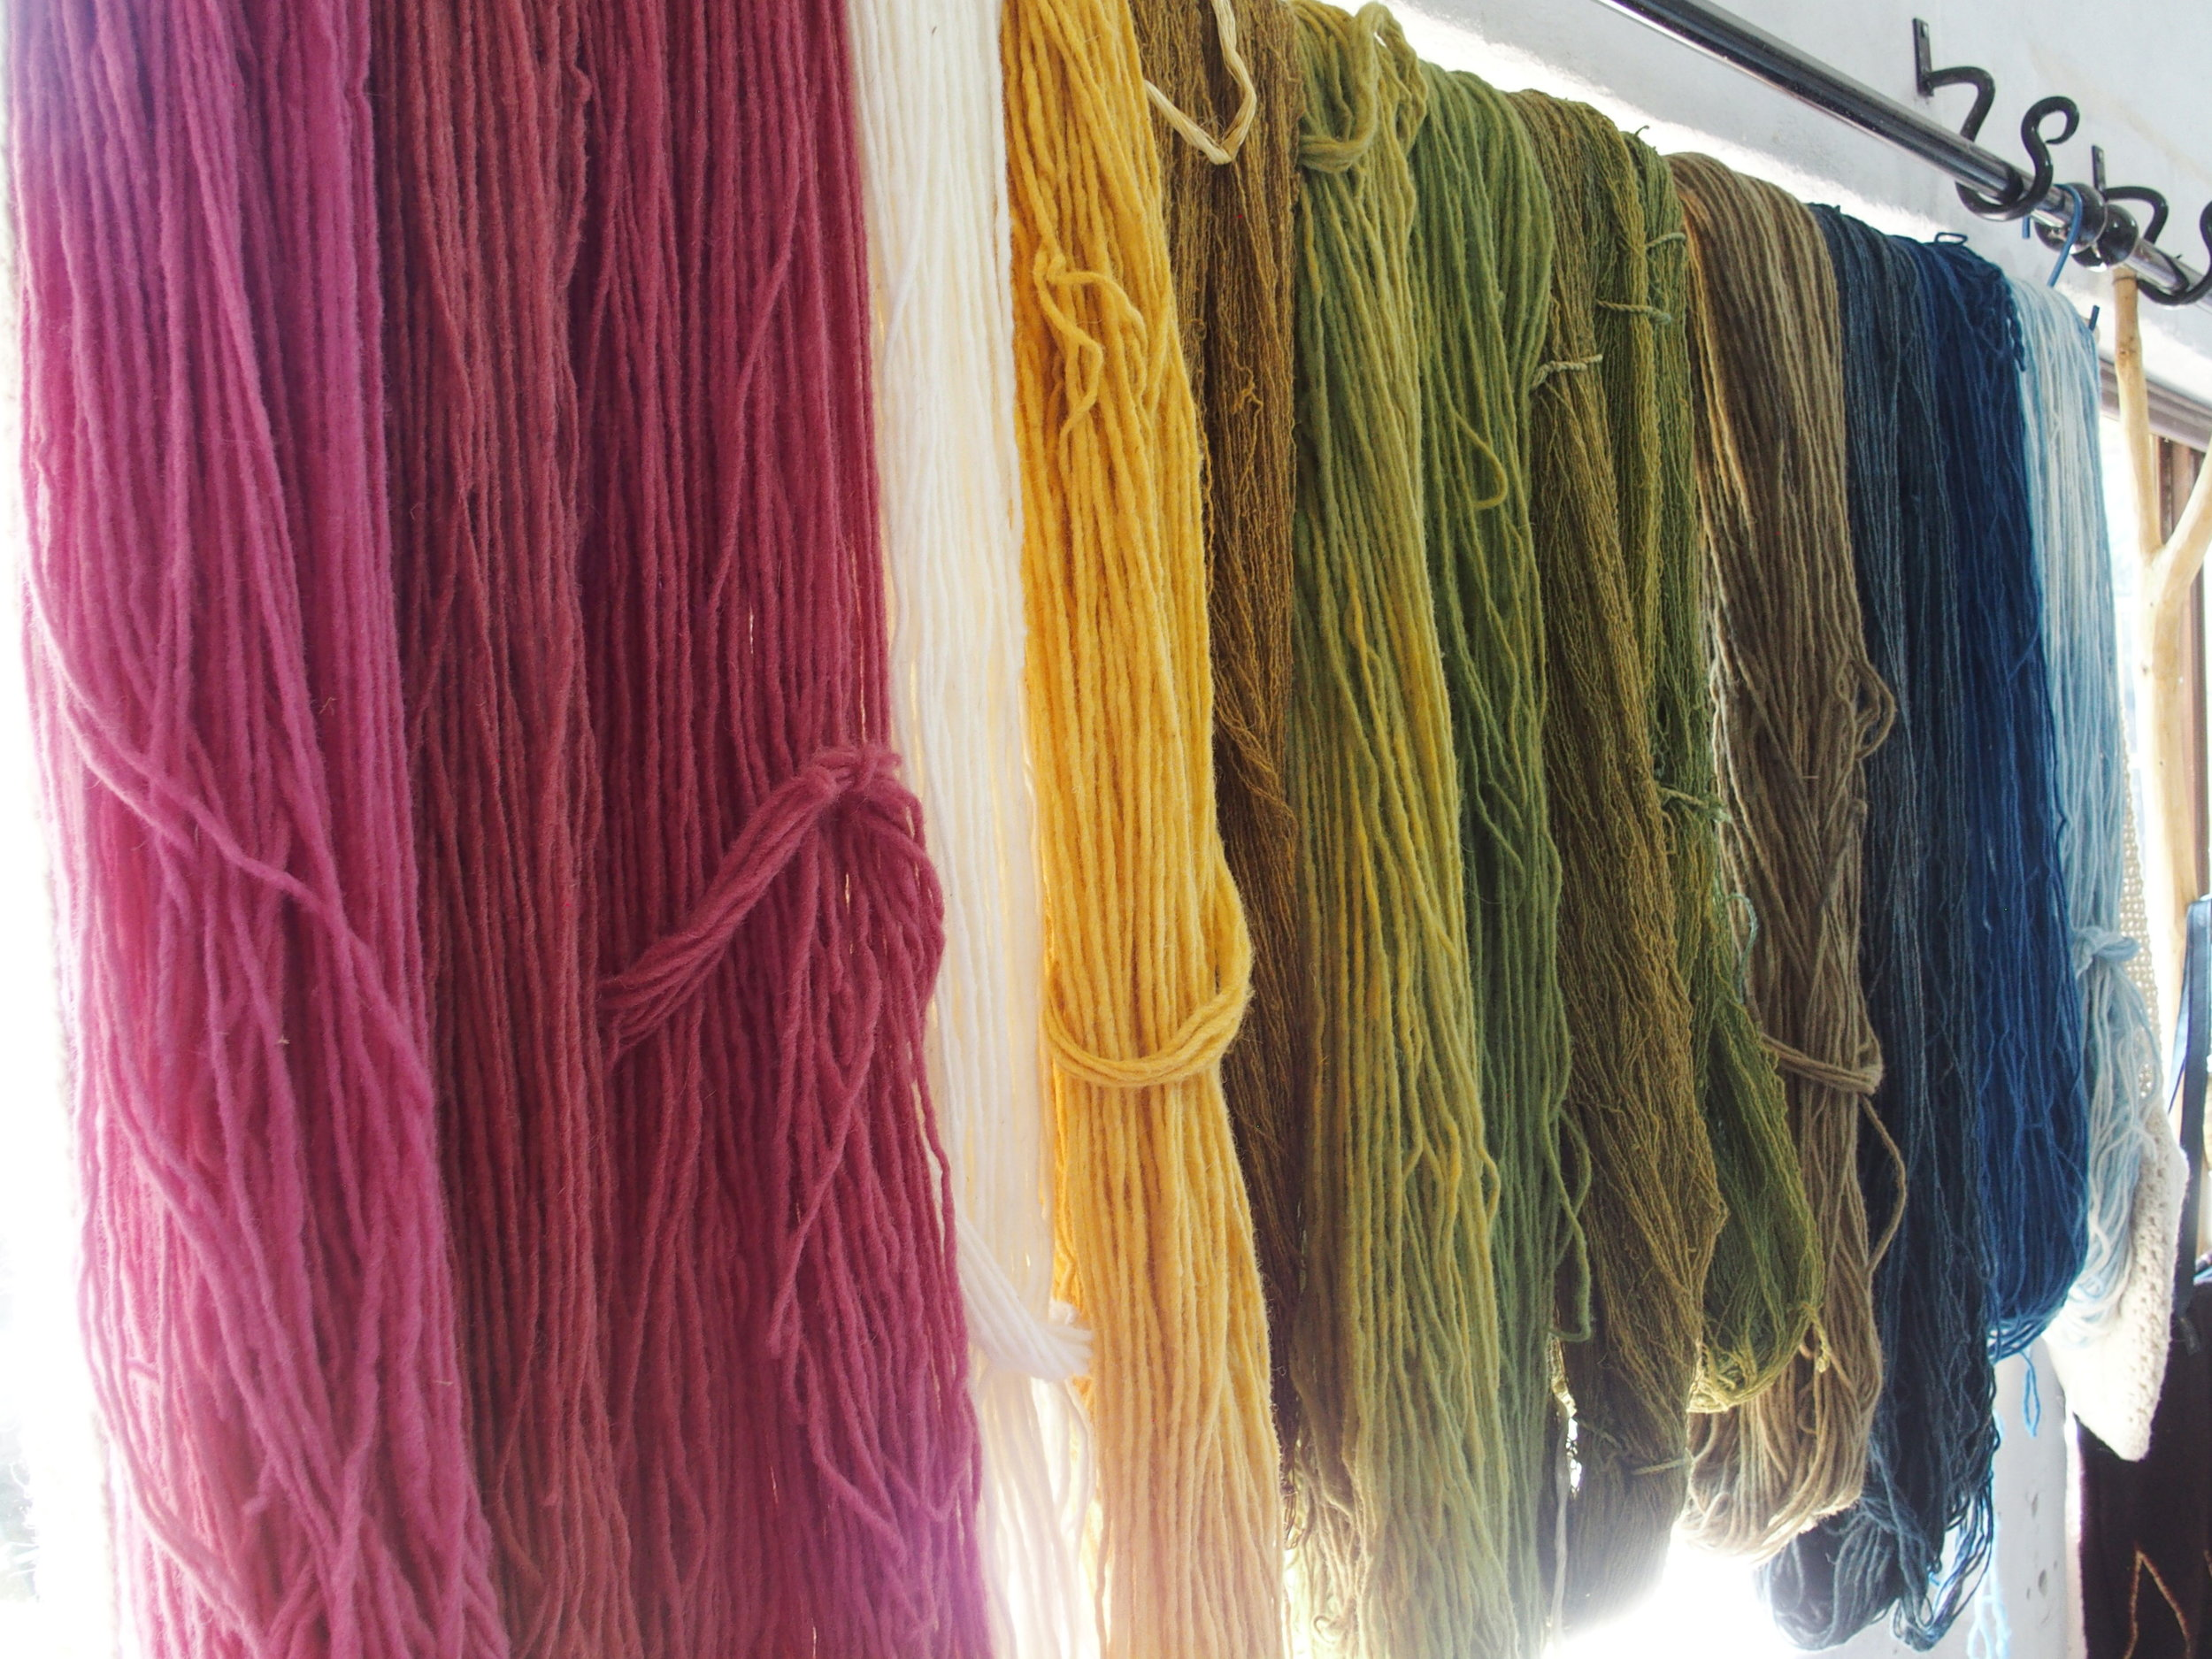 Hand dyed wool yarn in natural dyes